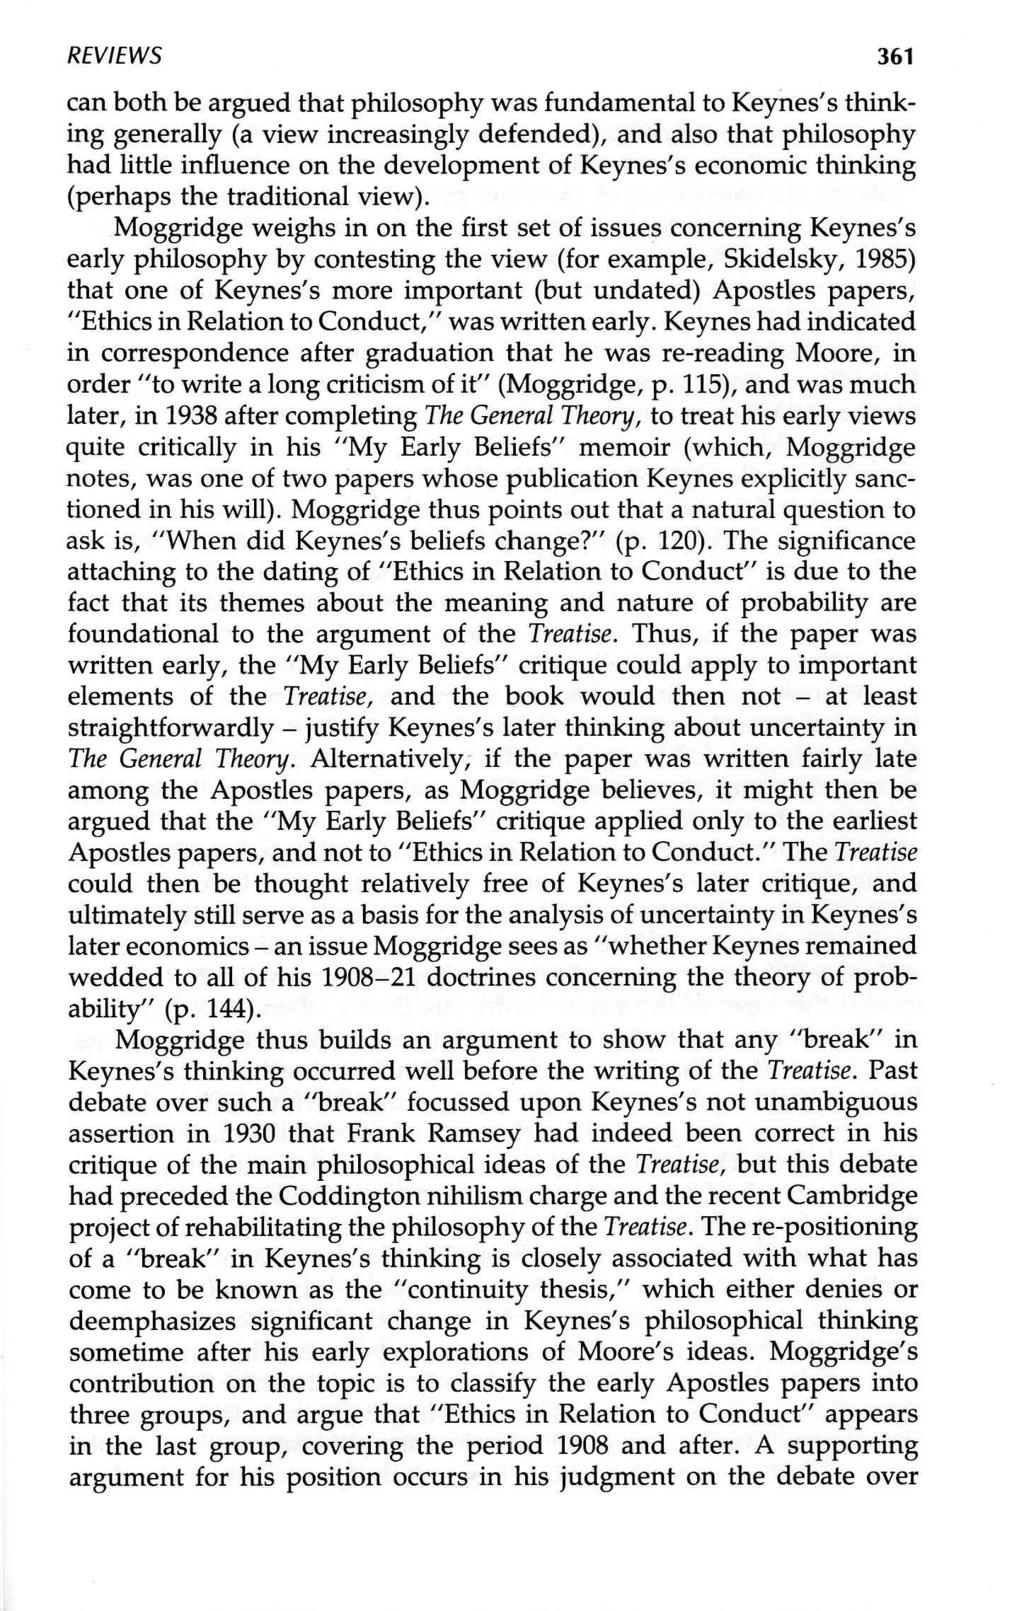 REVIEWS 361 can both be argued that philosophy was fundamental to Keynes's thinking generally (a view increasingly defended), and also that philosophy had little influence on the development of